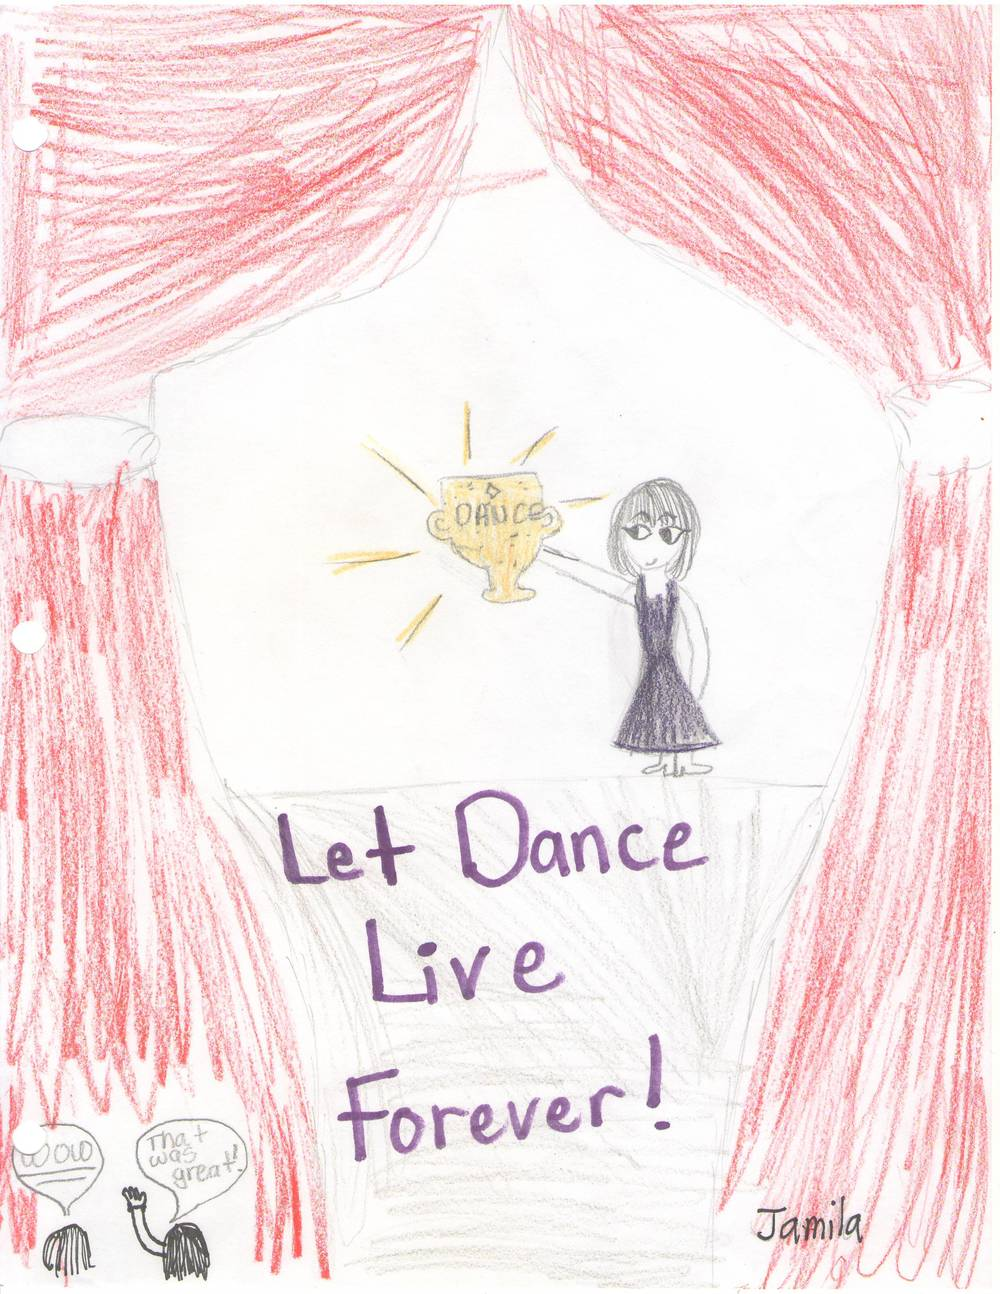 Children's Letters and Drawings0023.JPG